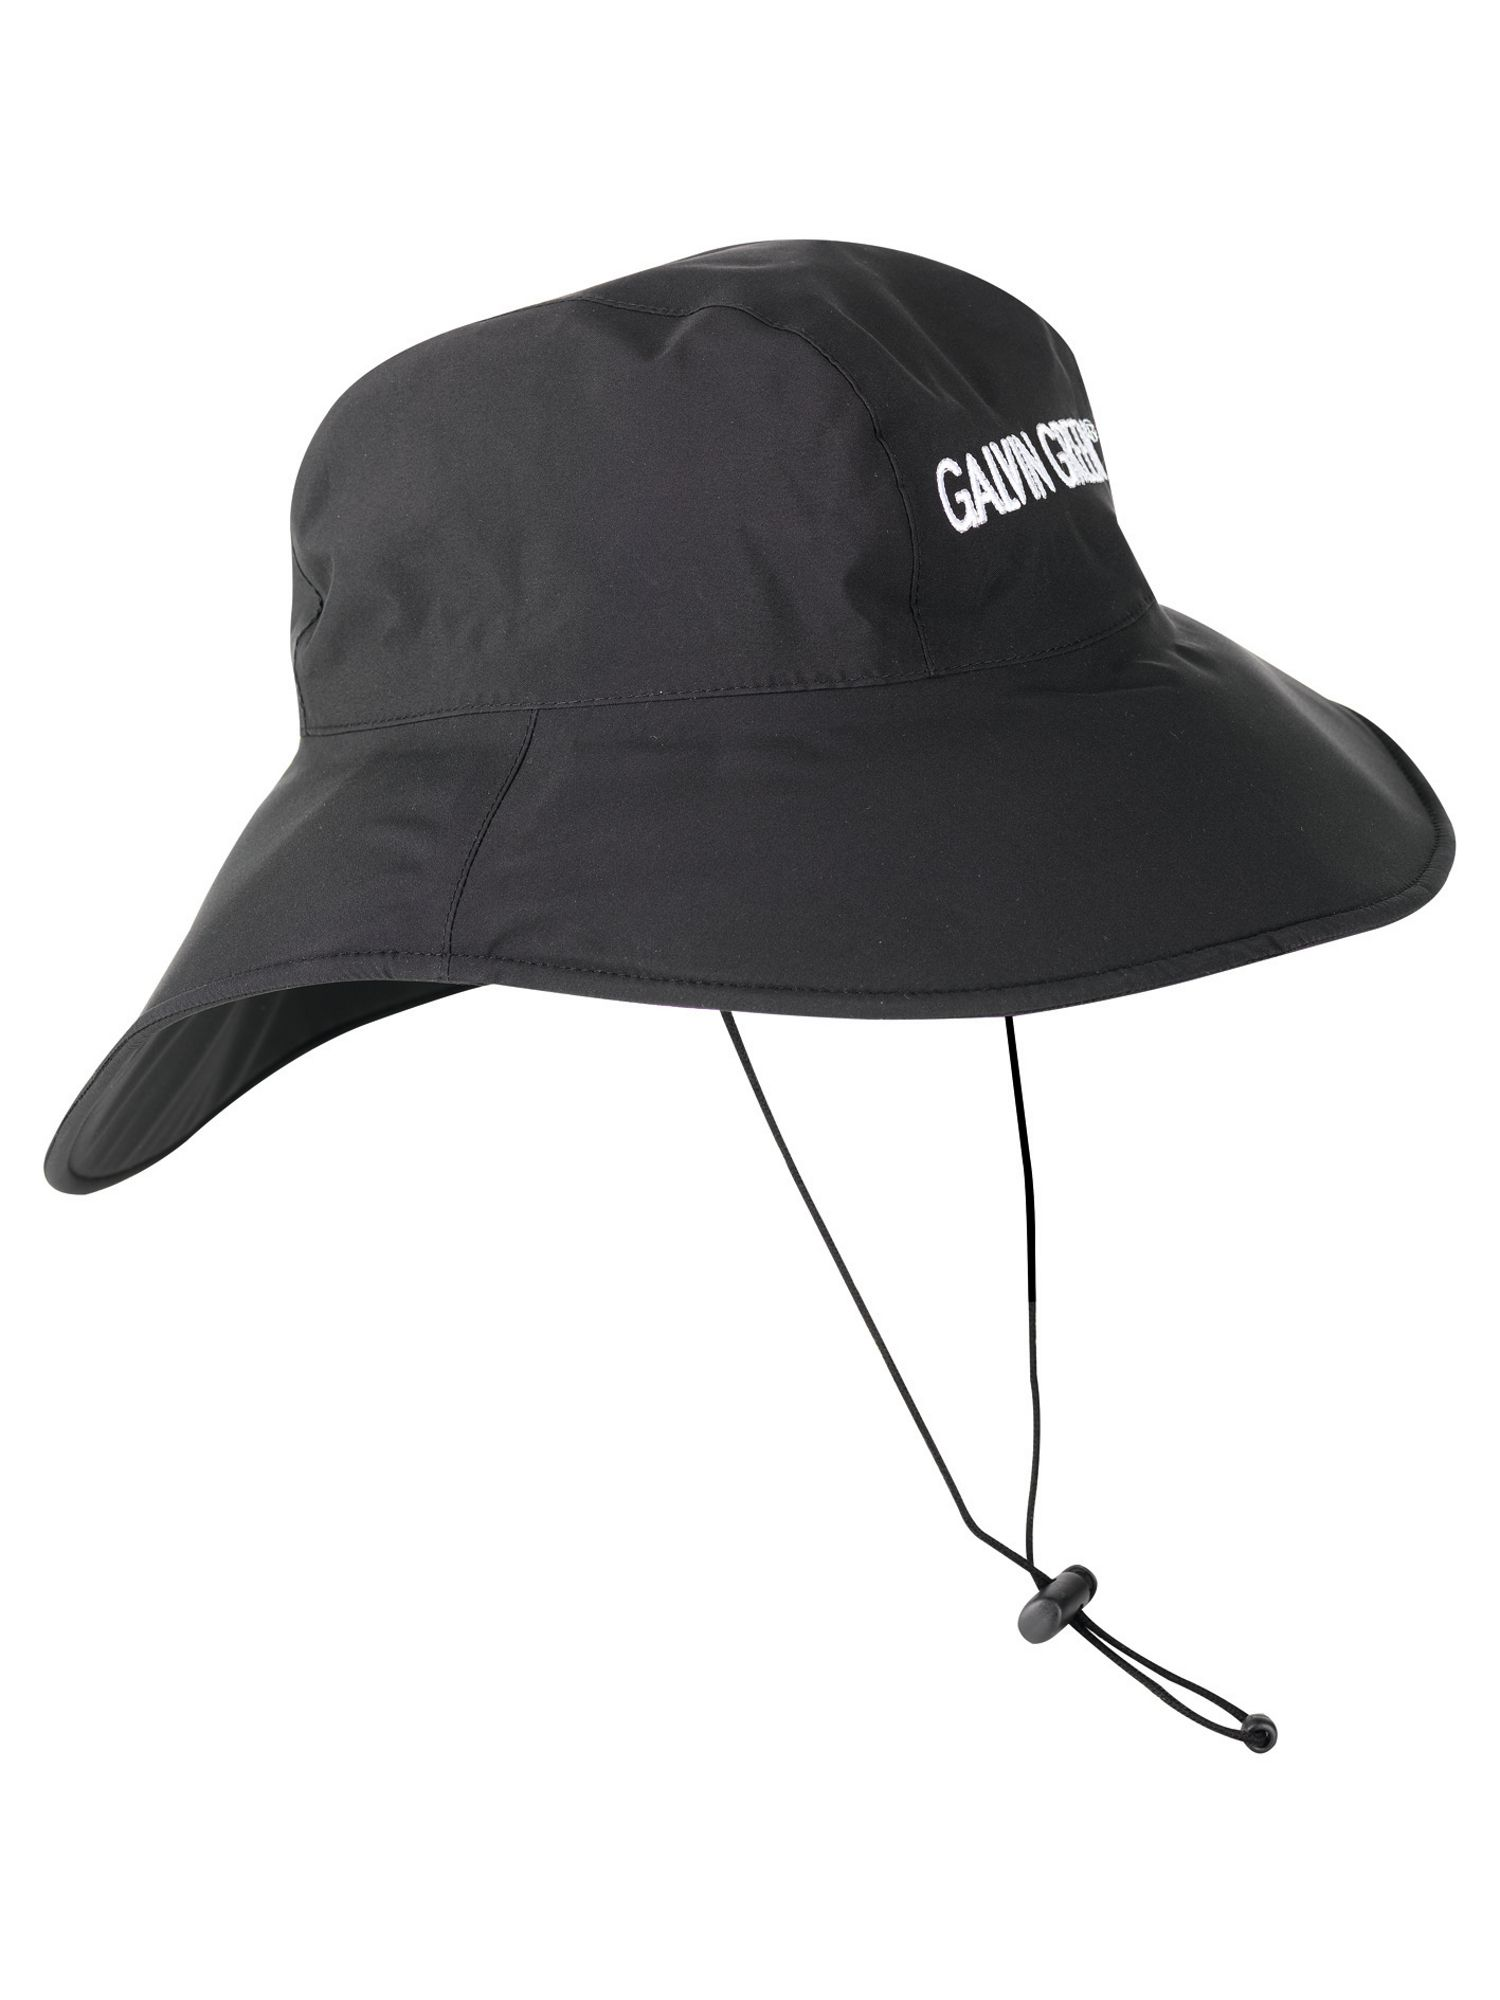 Aura gore tex bucket hat